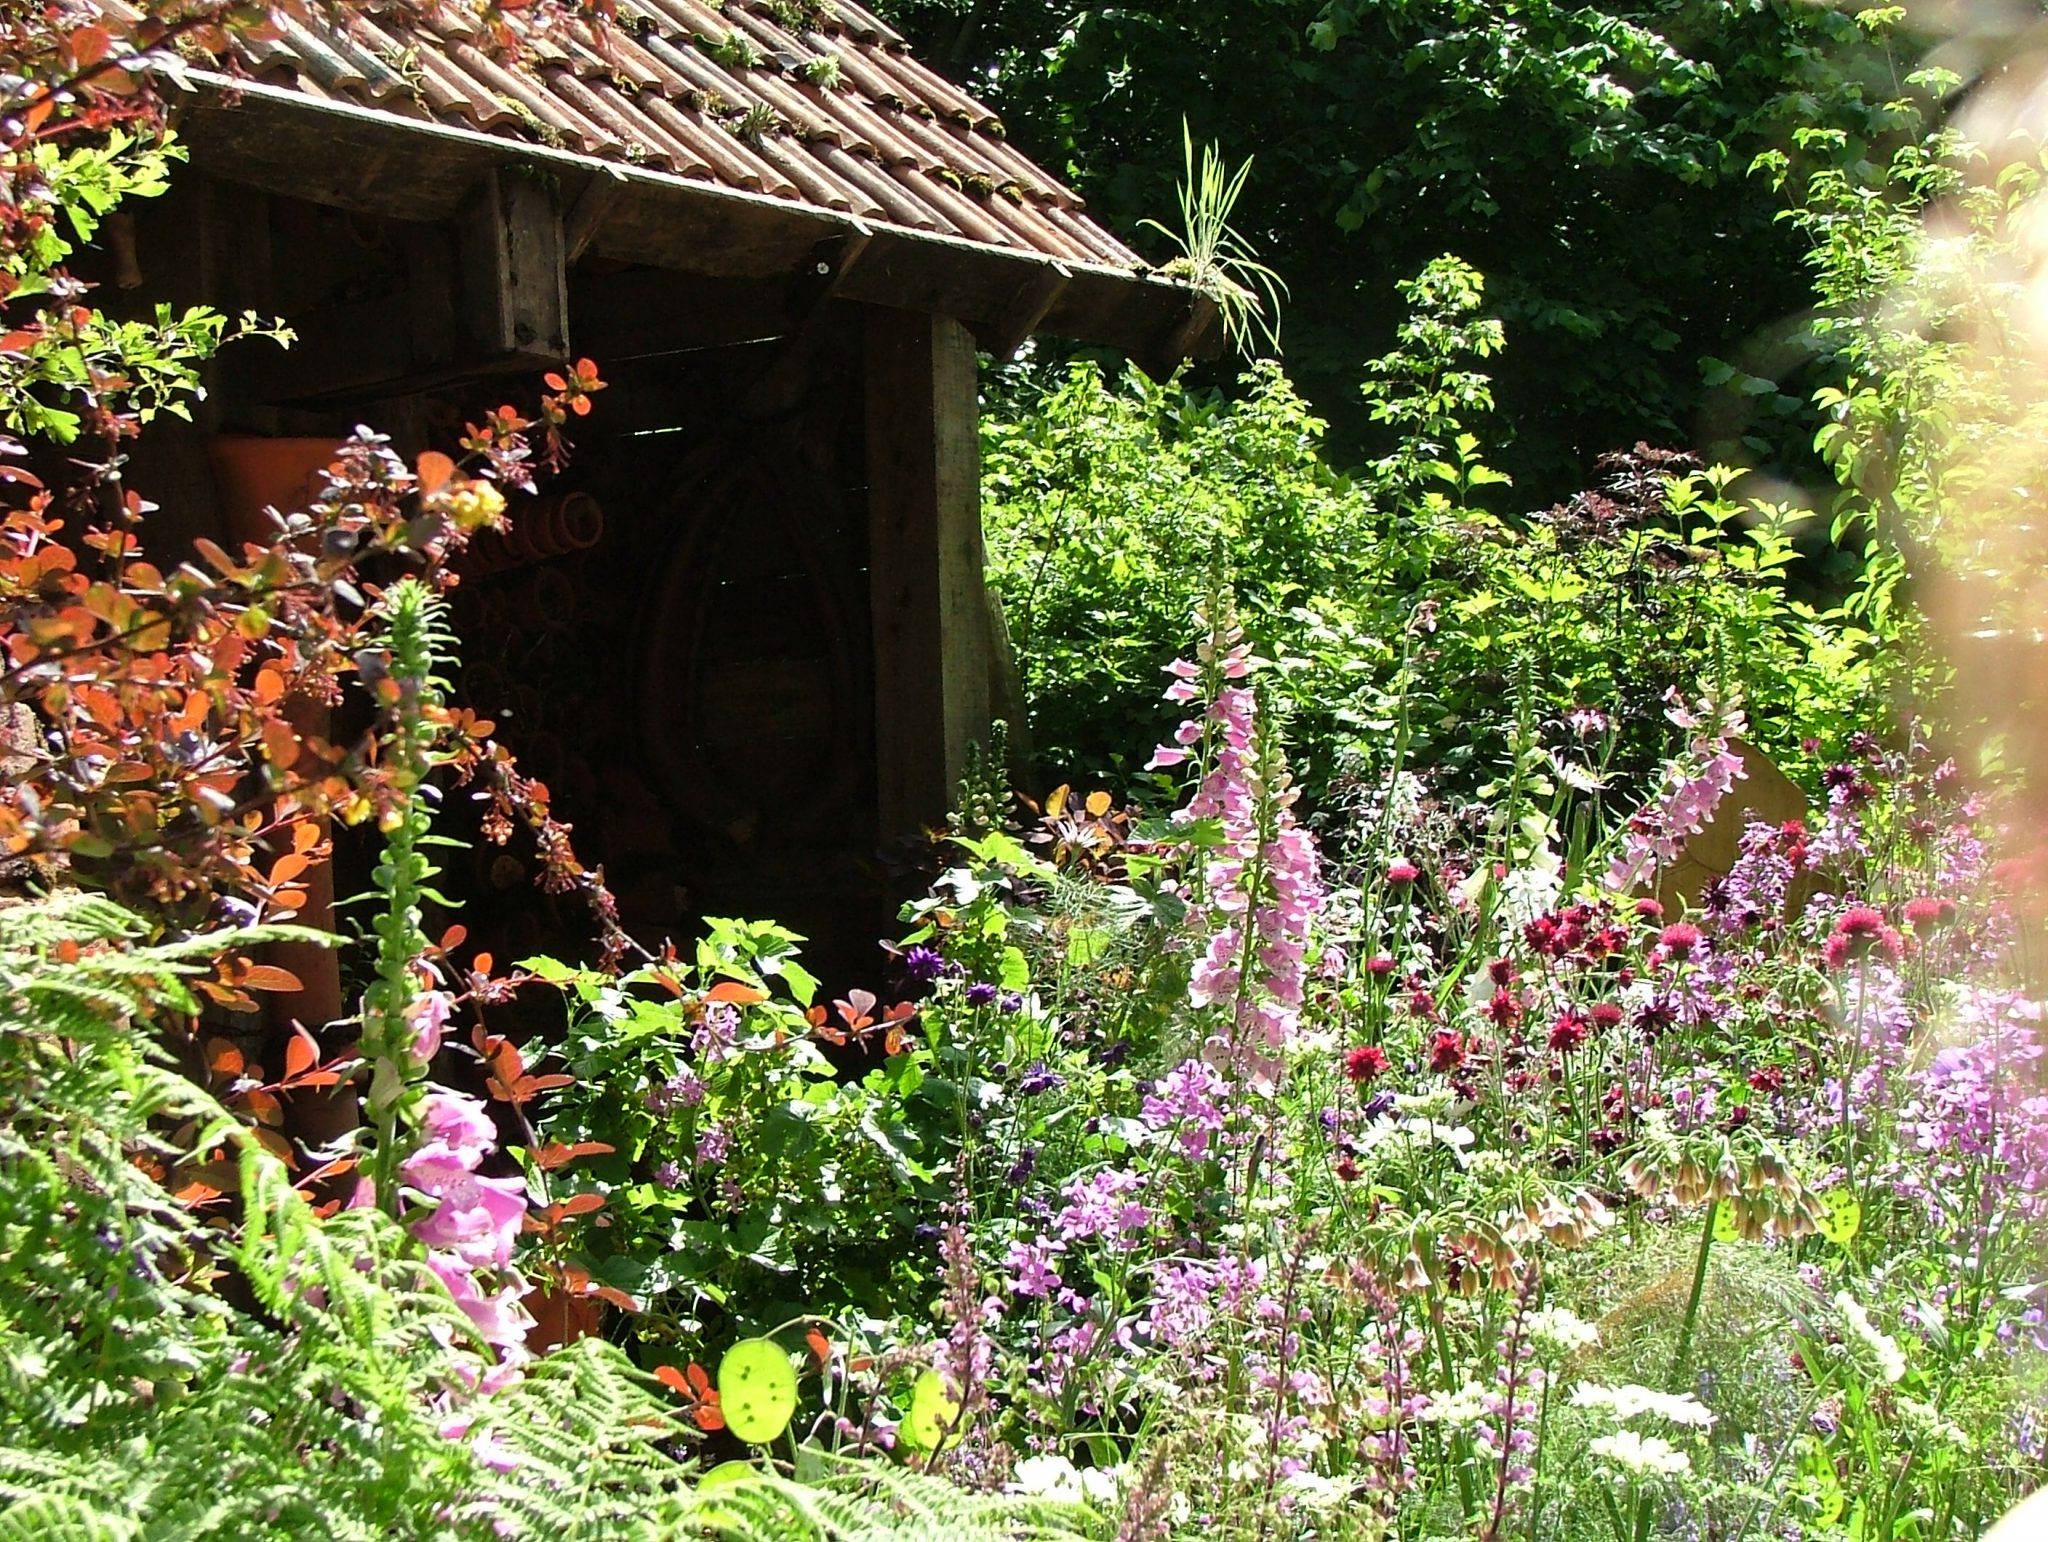 Potter's Garden. Note: the Artisan Gardens all sit on plots measuring 5 meters by 4 meters. Photo by Anne Guy.